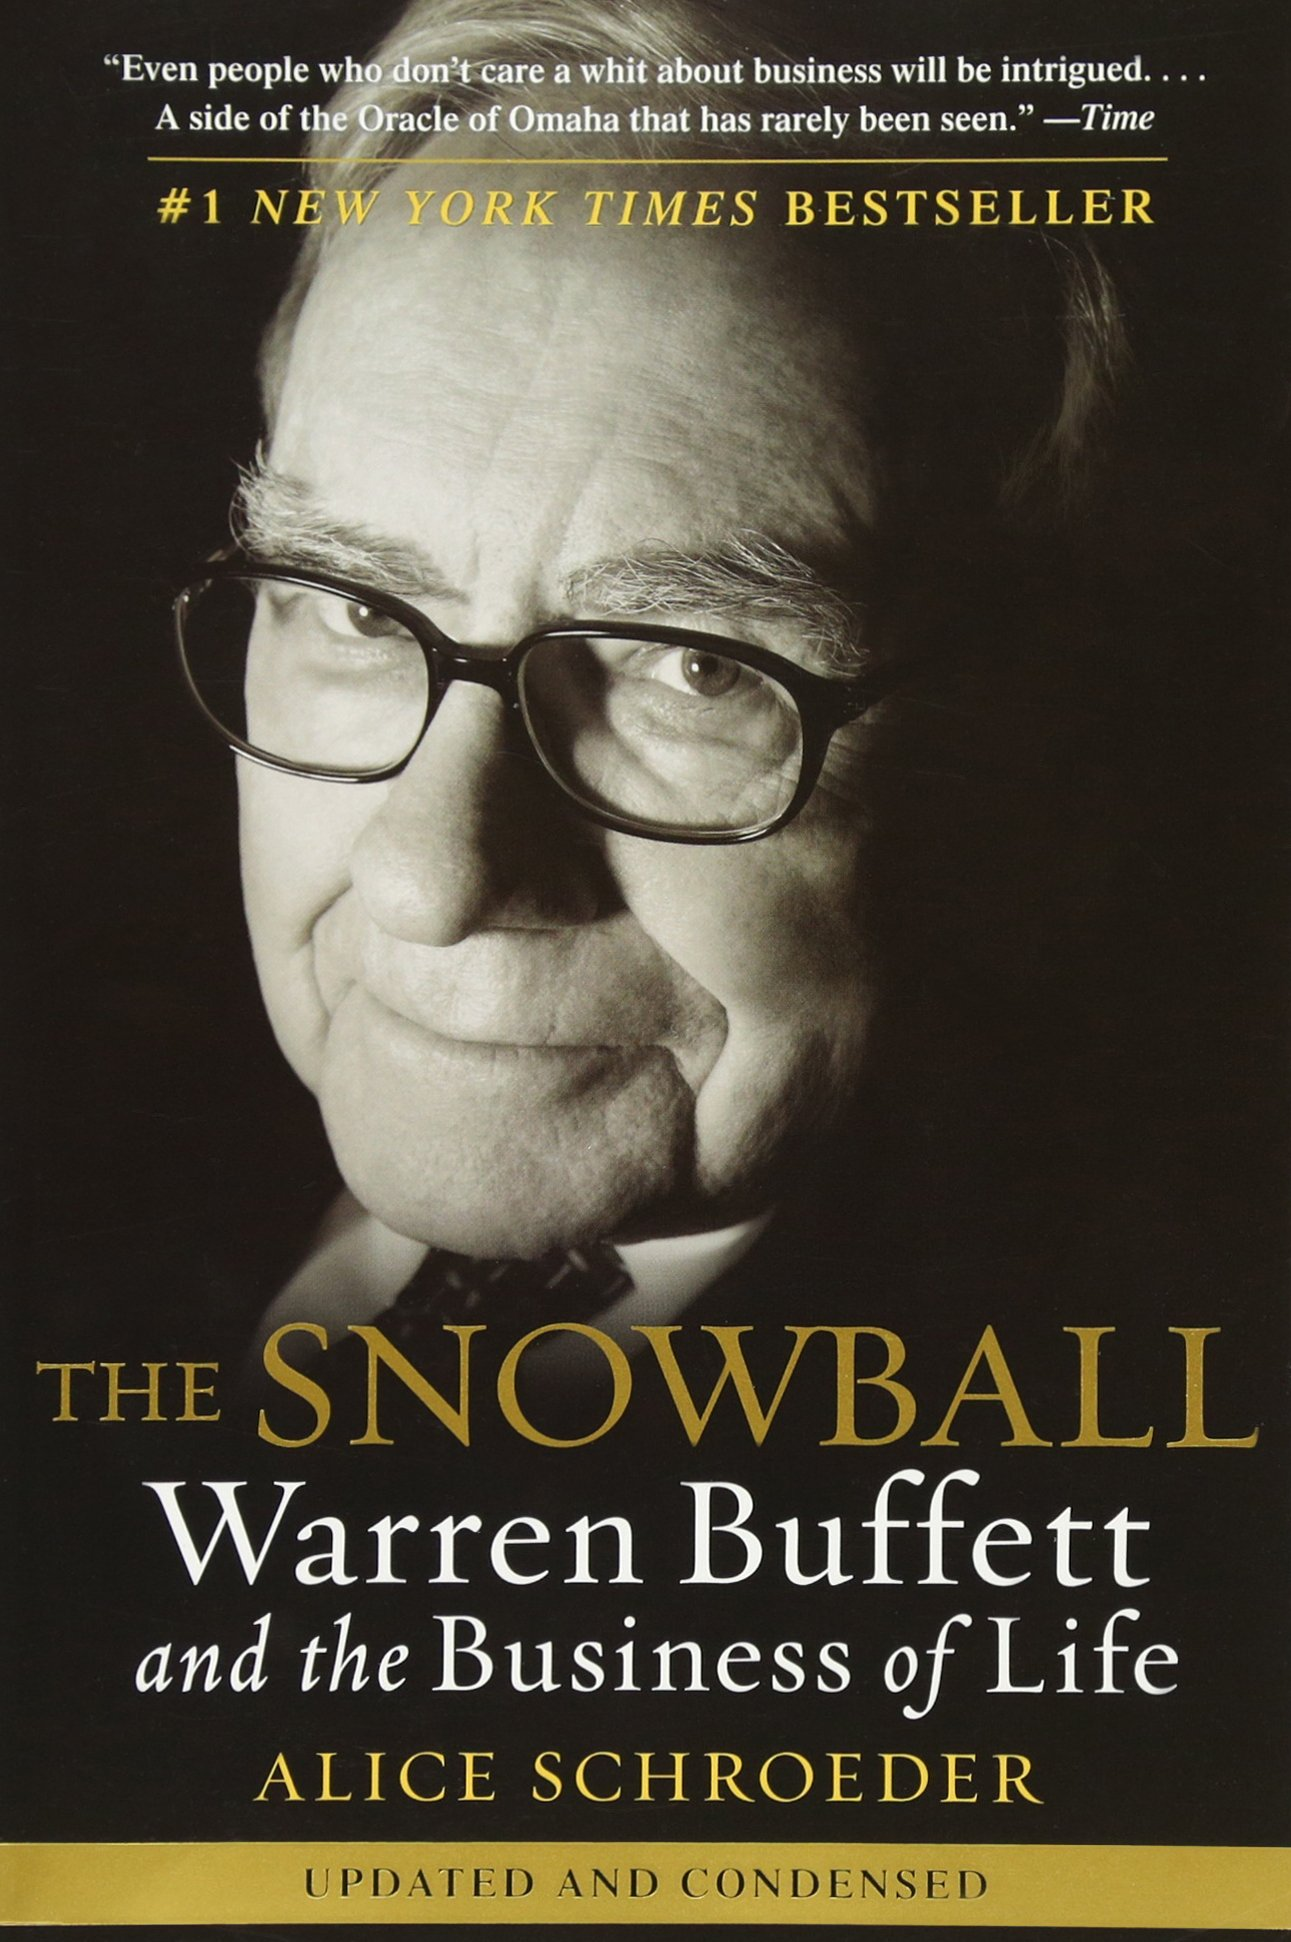 Book Suggestion: The Snowball